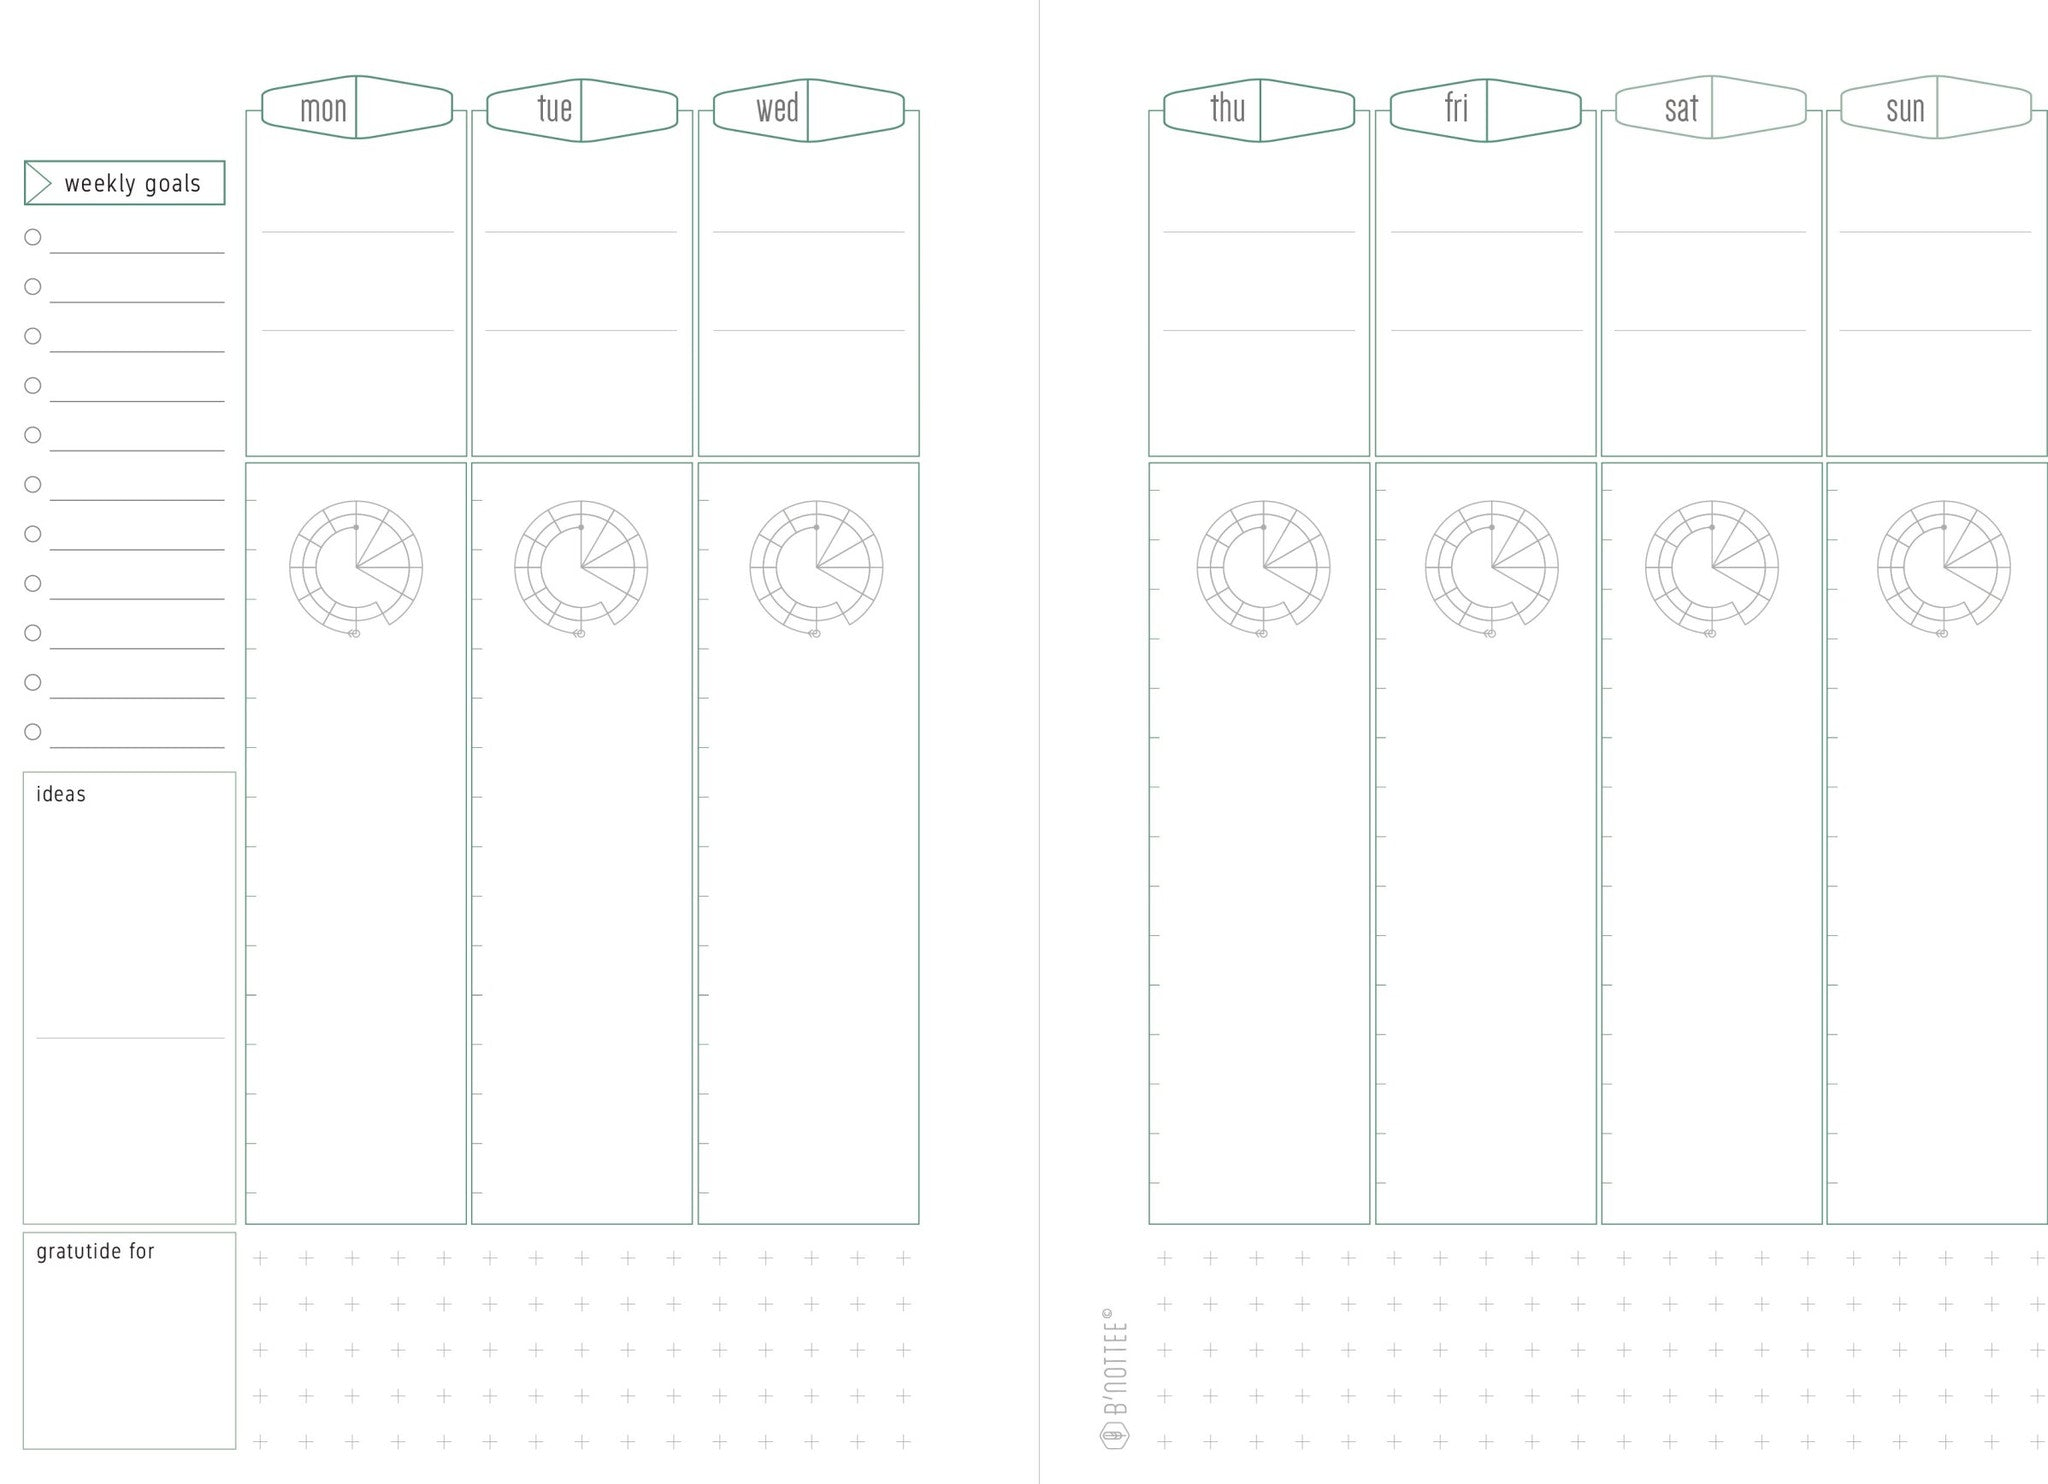 picture relating to Free A5 Planner Printables named Free of charge Weekly A5 Planner Printable - Nottee 3.0 - BNottee